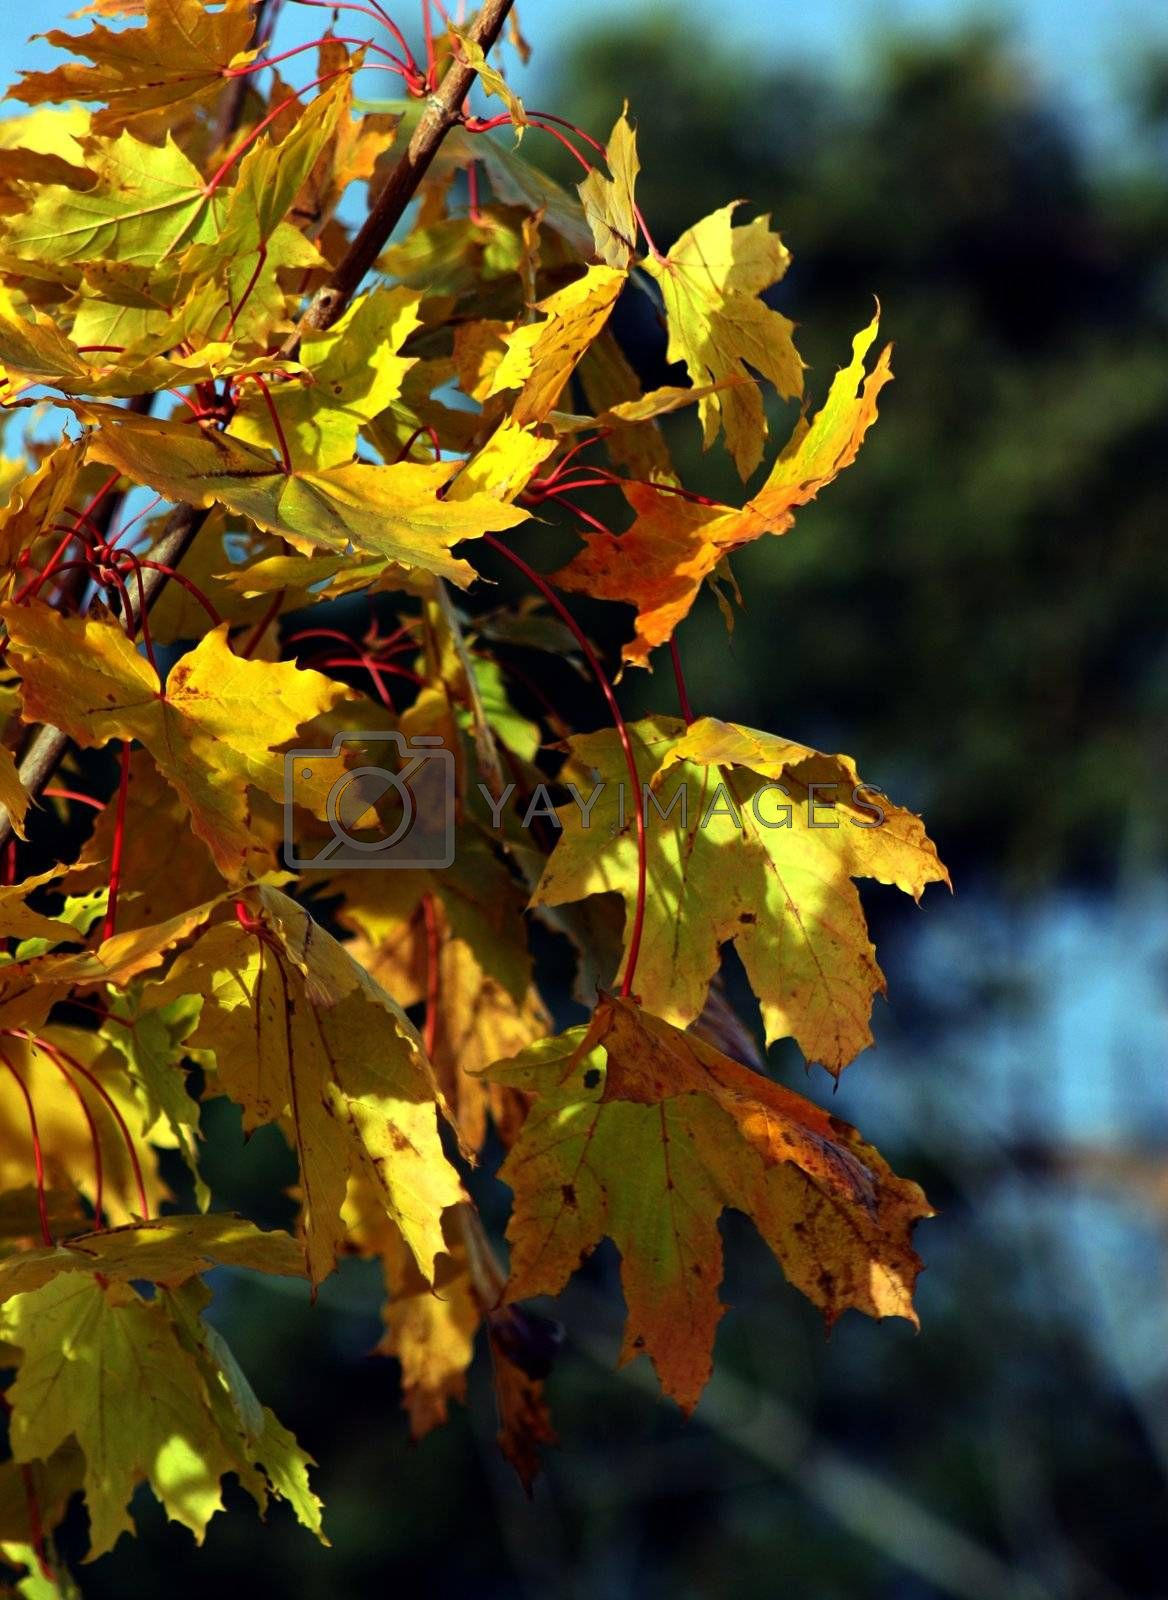 Dense maple leafs yellow in autumn